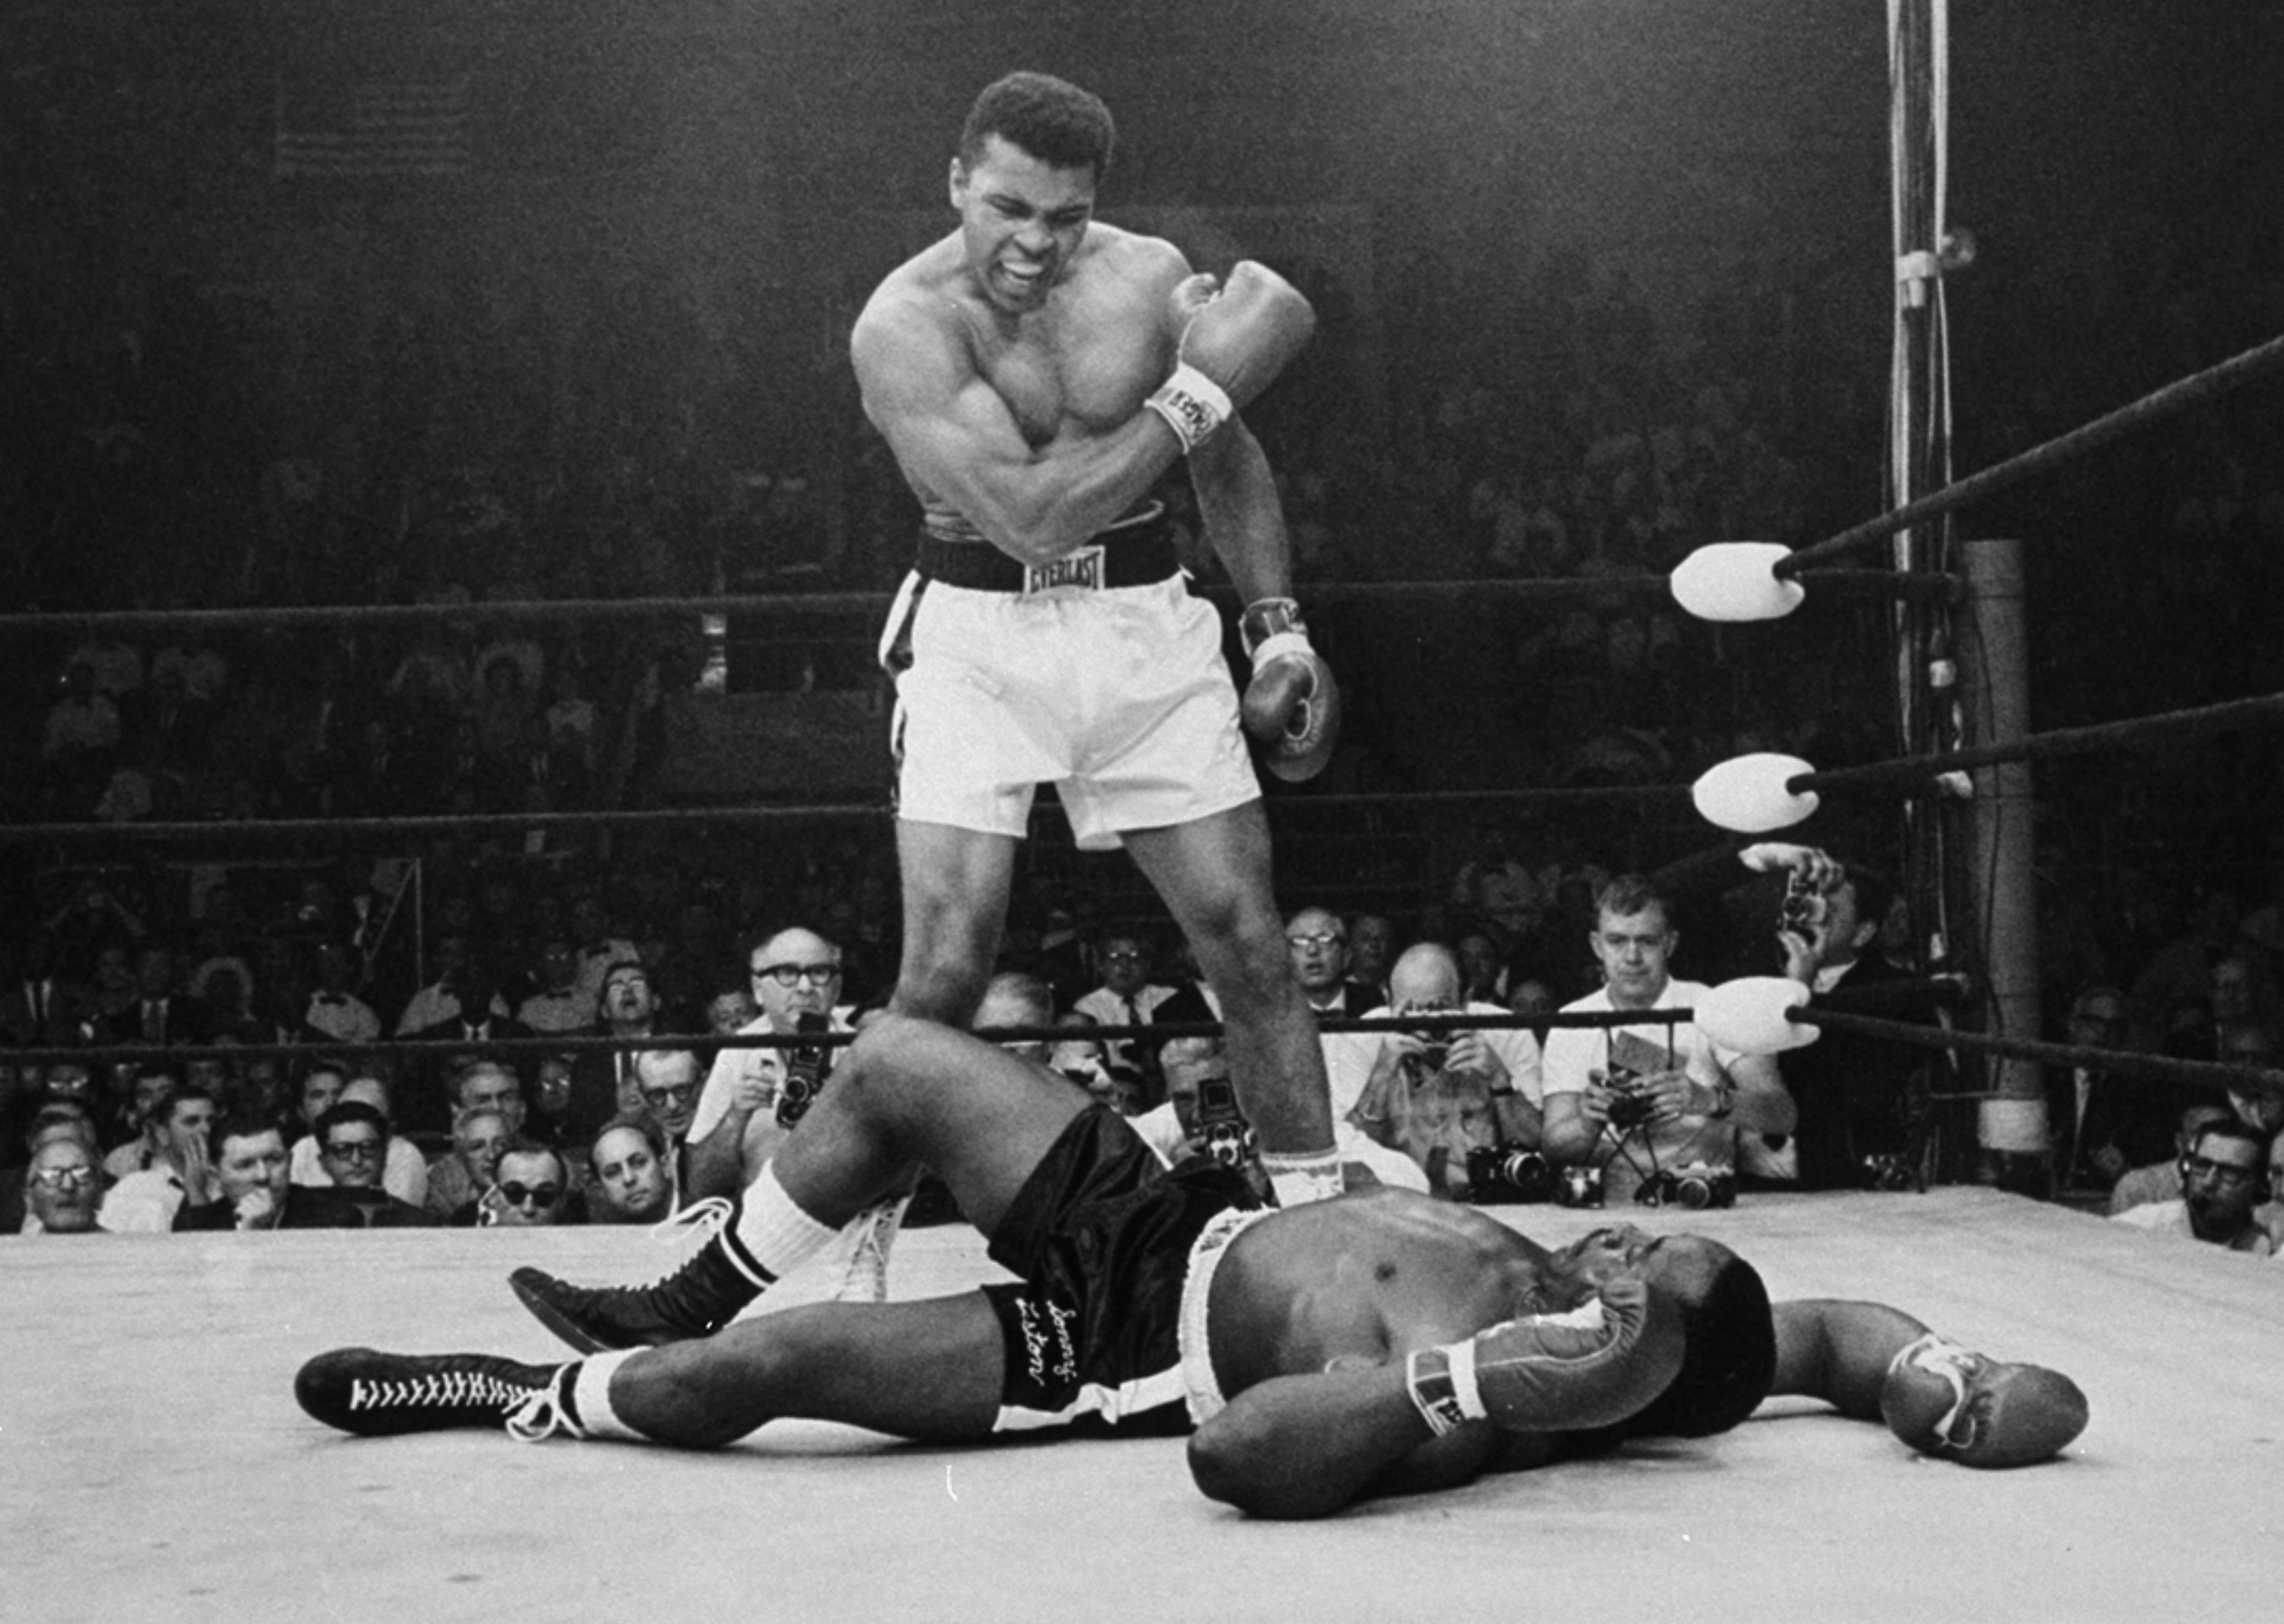 FILE - Heavyweight champion Muhammad Ali stands over fallen challenger Sonny Liston, shouting and gesturing shortly after dropping Liston with a short hard right to the jaw, in Lewiston, Maine, May 25, 1965.